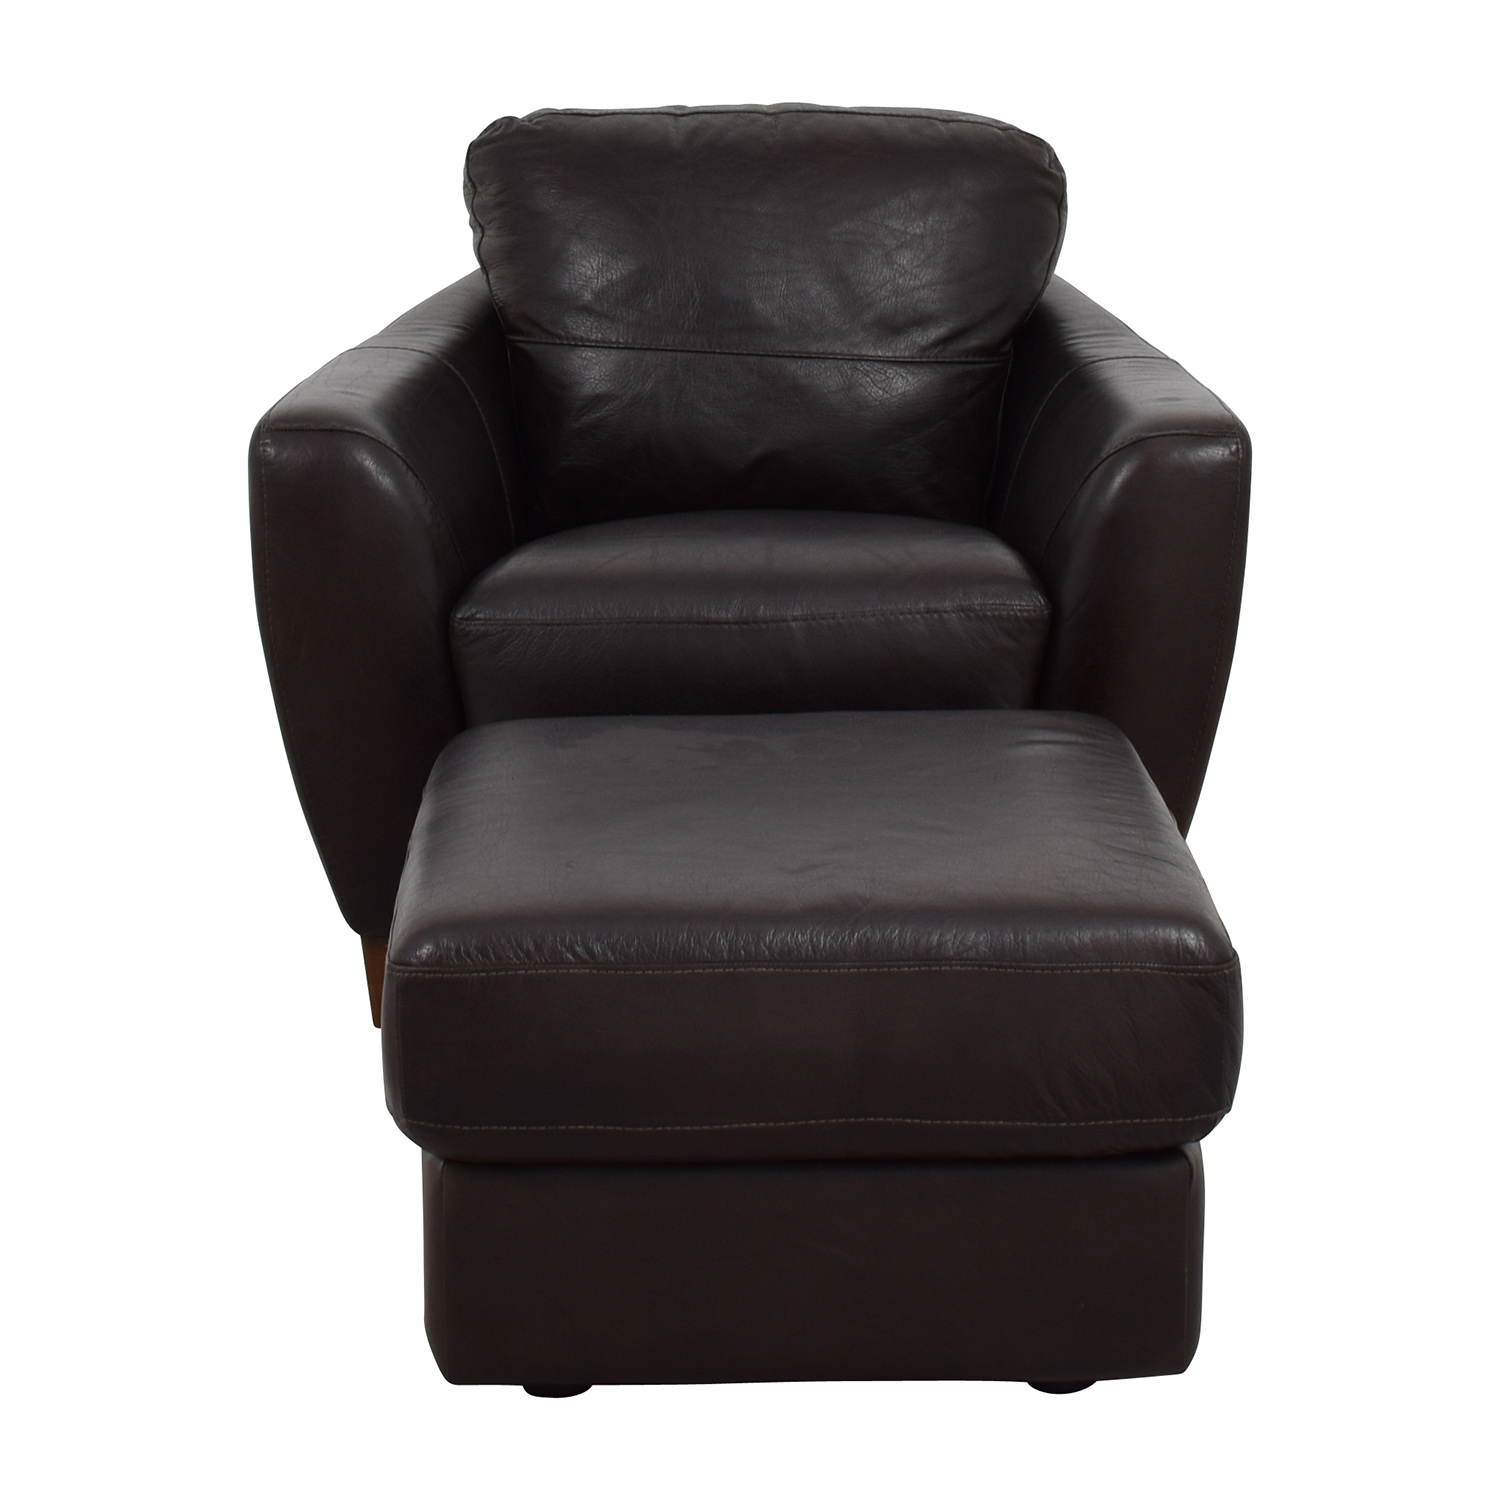 buy Sofitalia Sofitalia Dark Brown Leather Armchair and Ottoman online